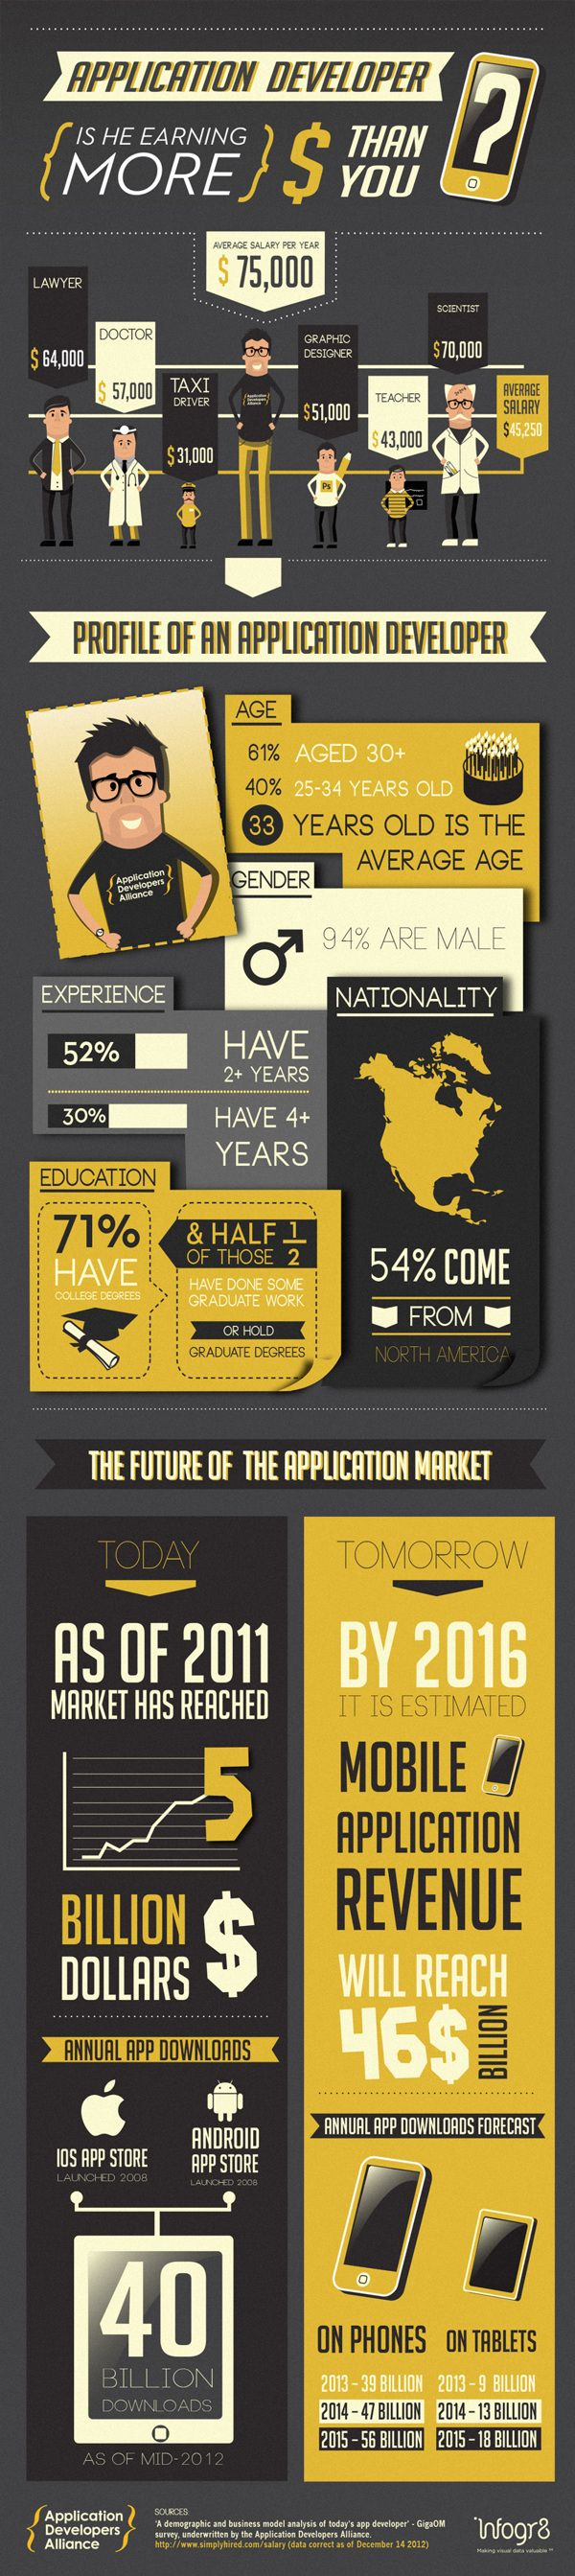 Is an application developer earning more than you? by infogr8 , via Behance